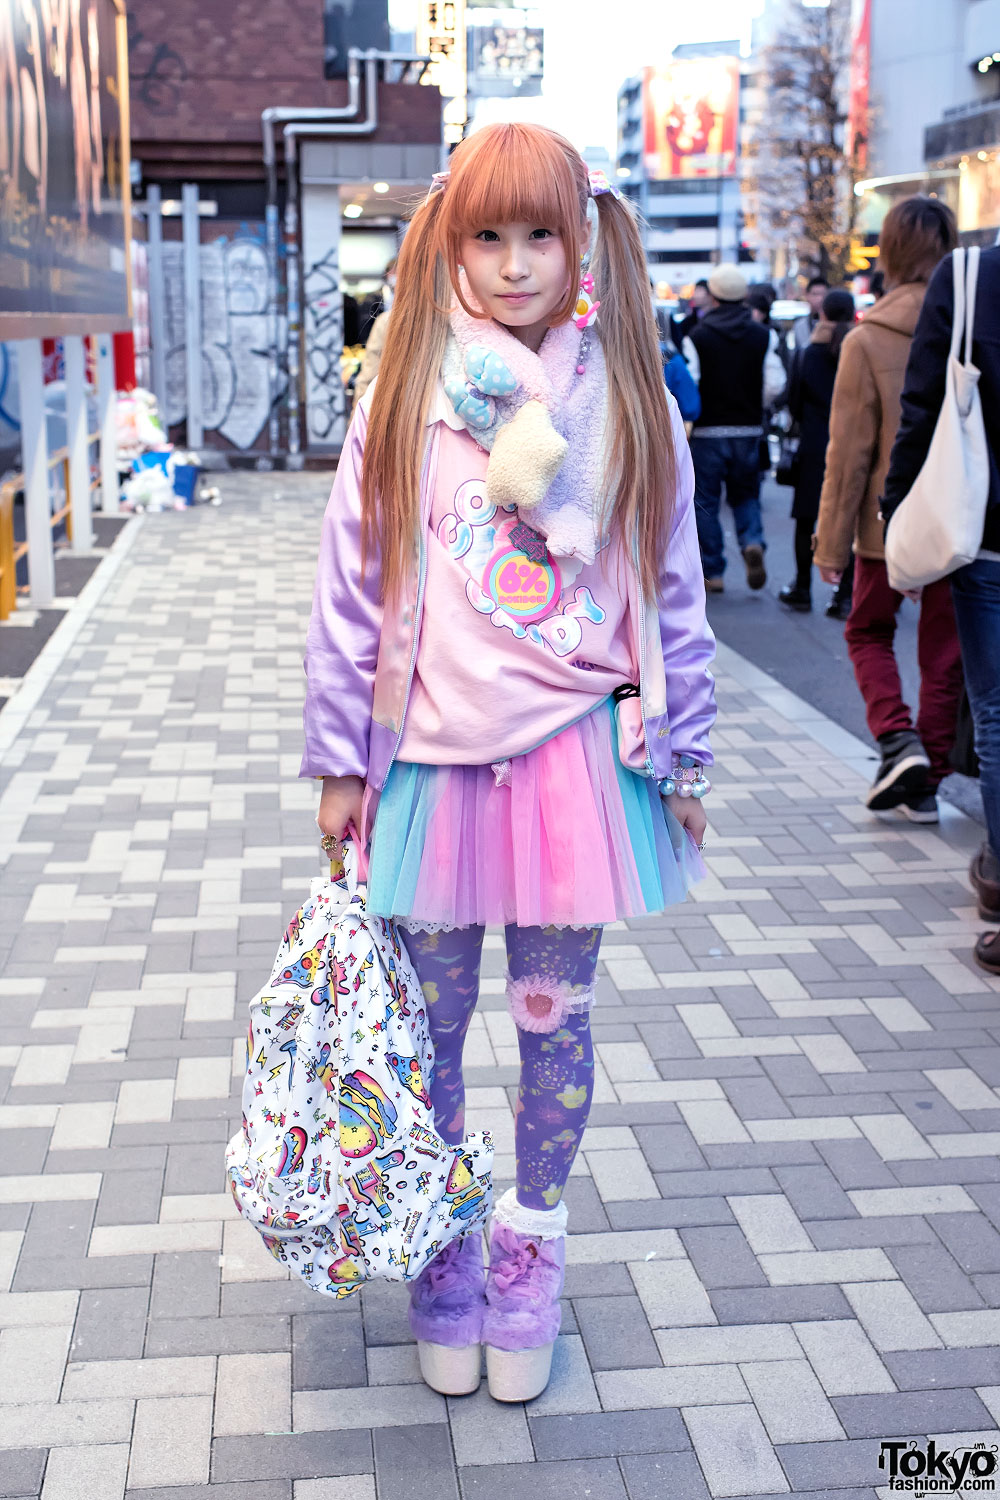 Girl Fashion Magazine: Kawaii Harajuku Girl's Style W/ Twintails, 6%DOKIDOKI